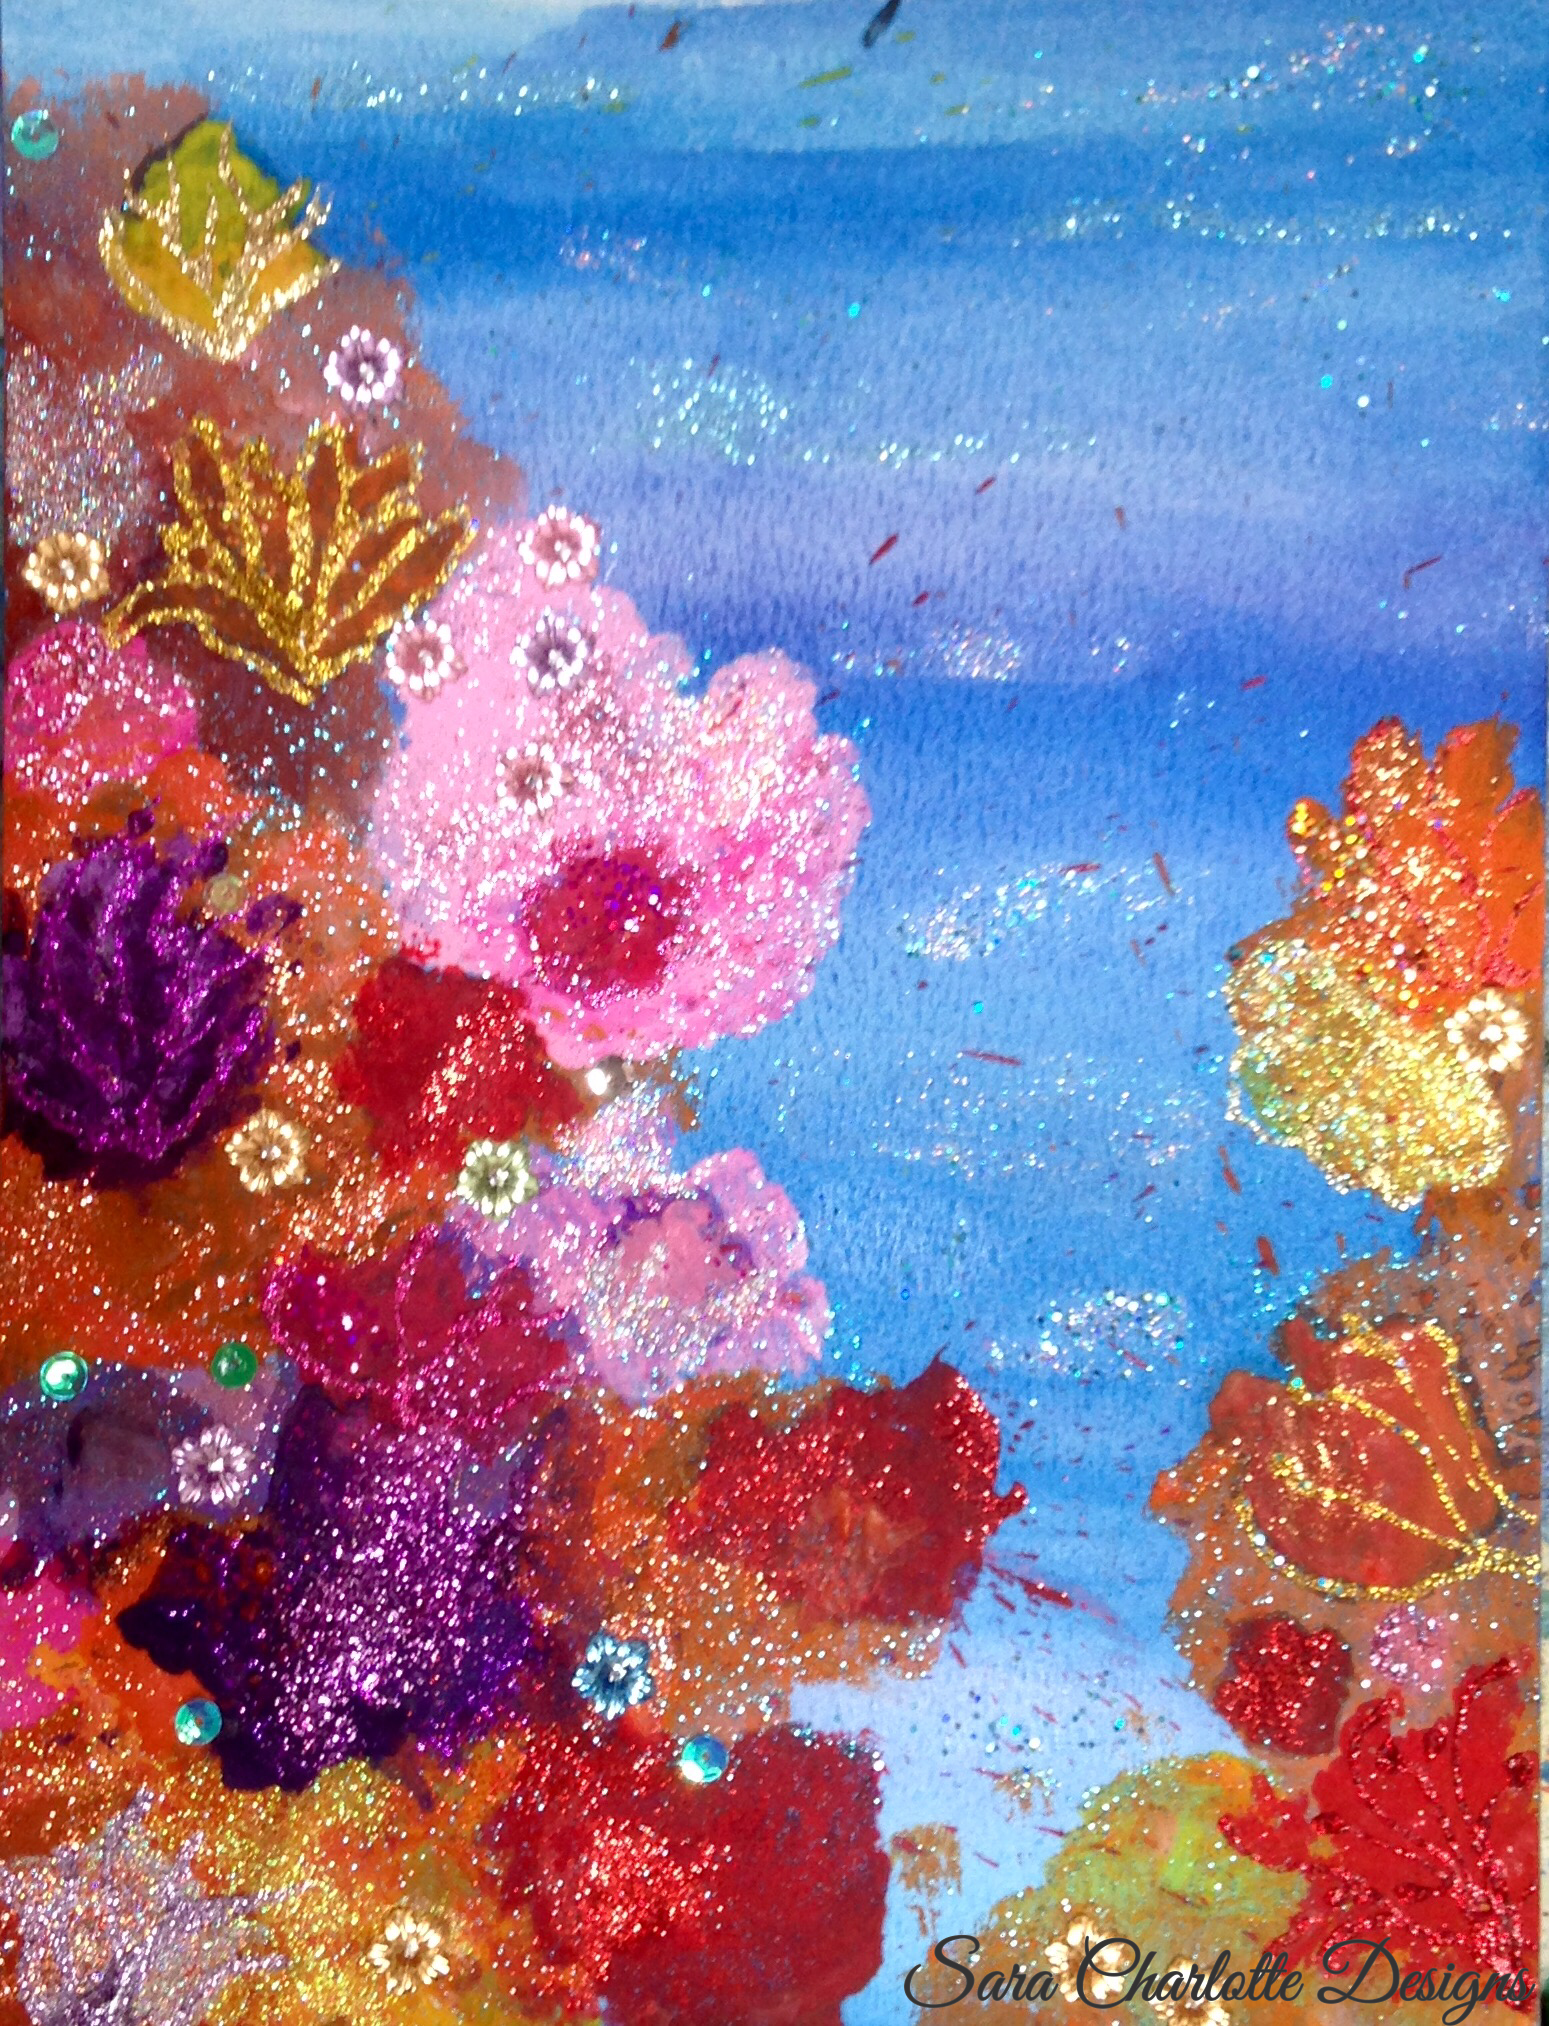 Abstract Coral Reef Painting in 2020 | Painting, Artwork ...